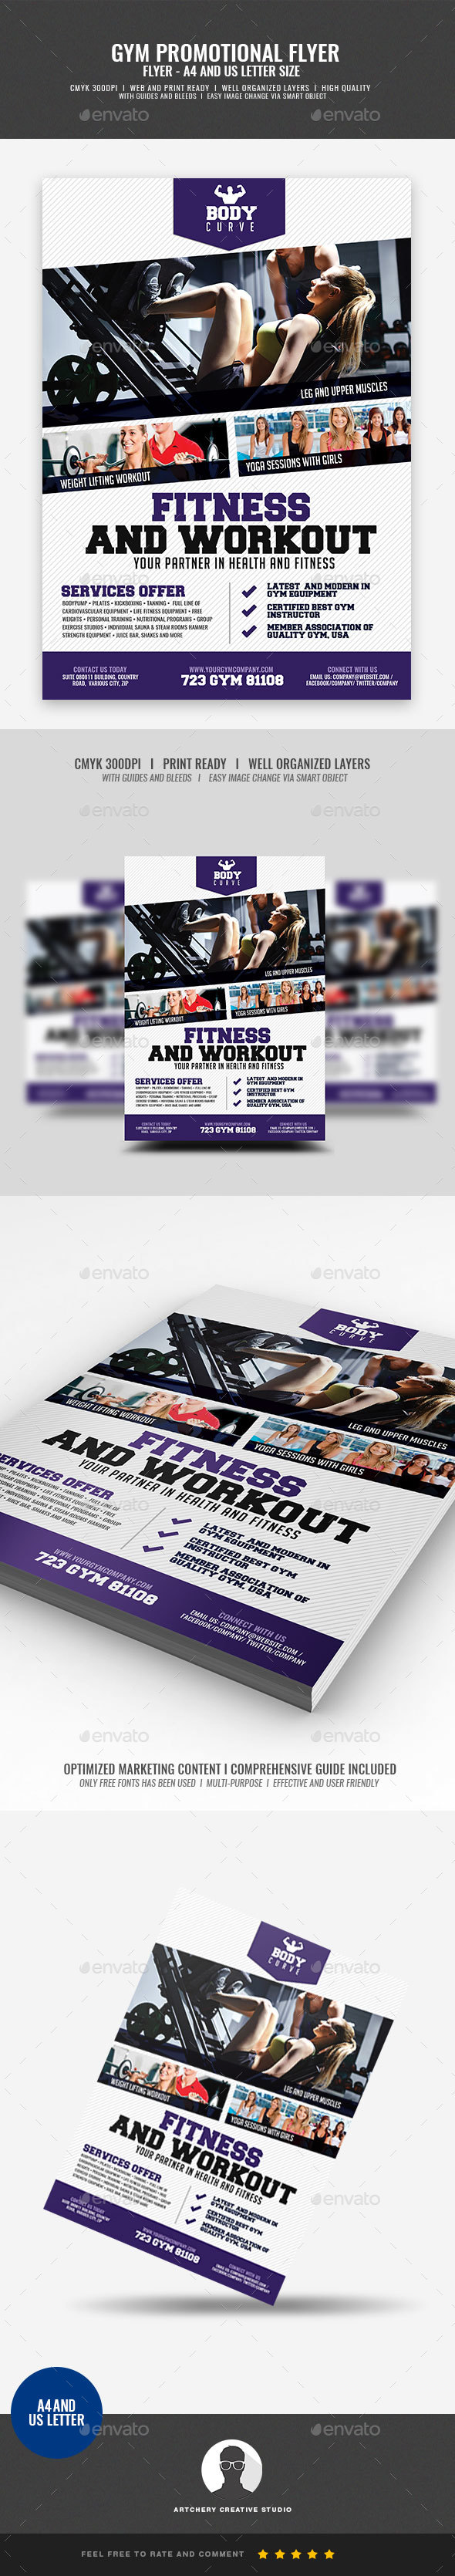 Body Fitness Promotional Flyer - Corporate Flyers